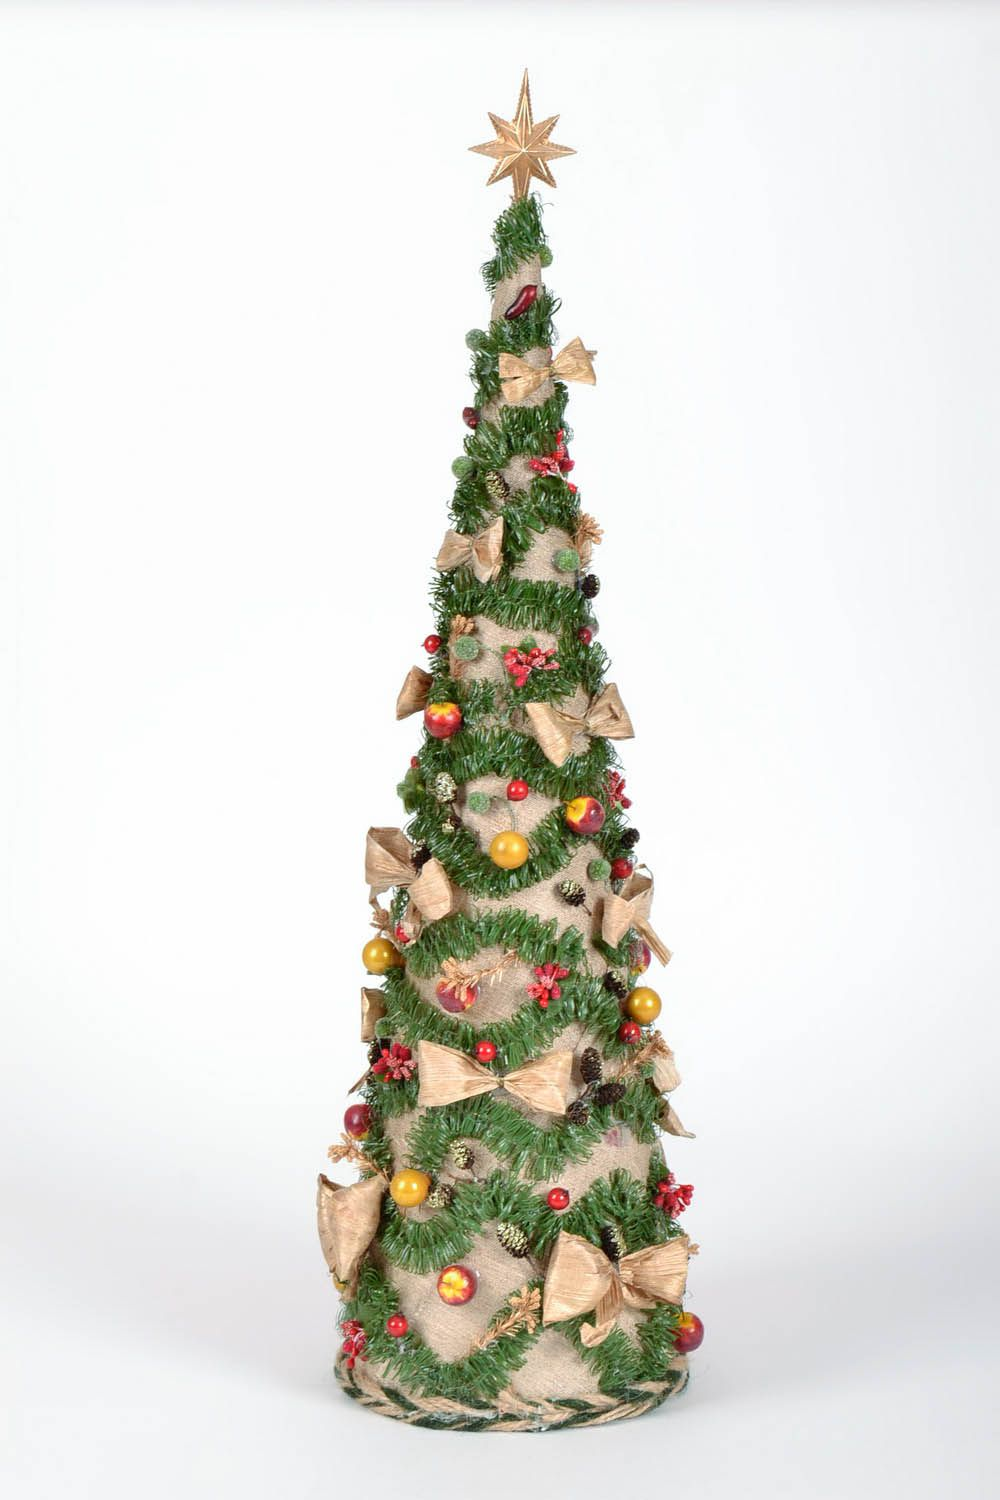 Decorative Christmas tree photo 3